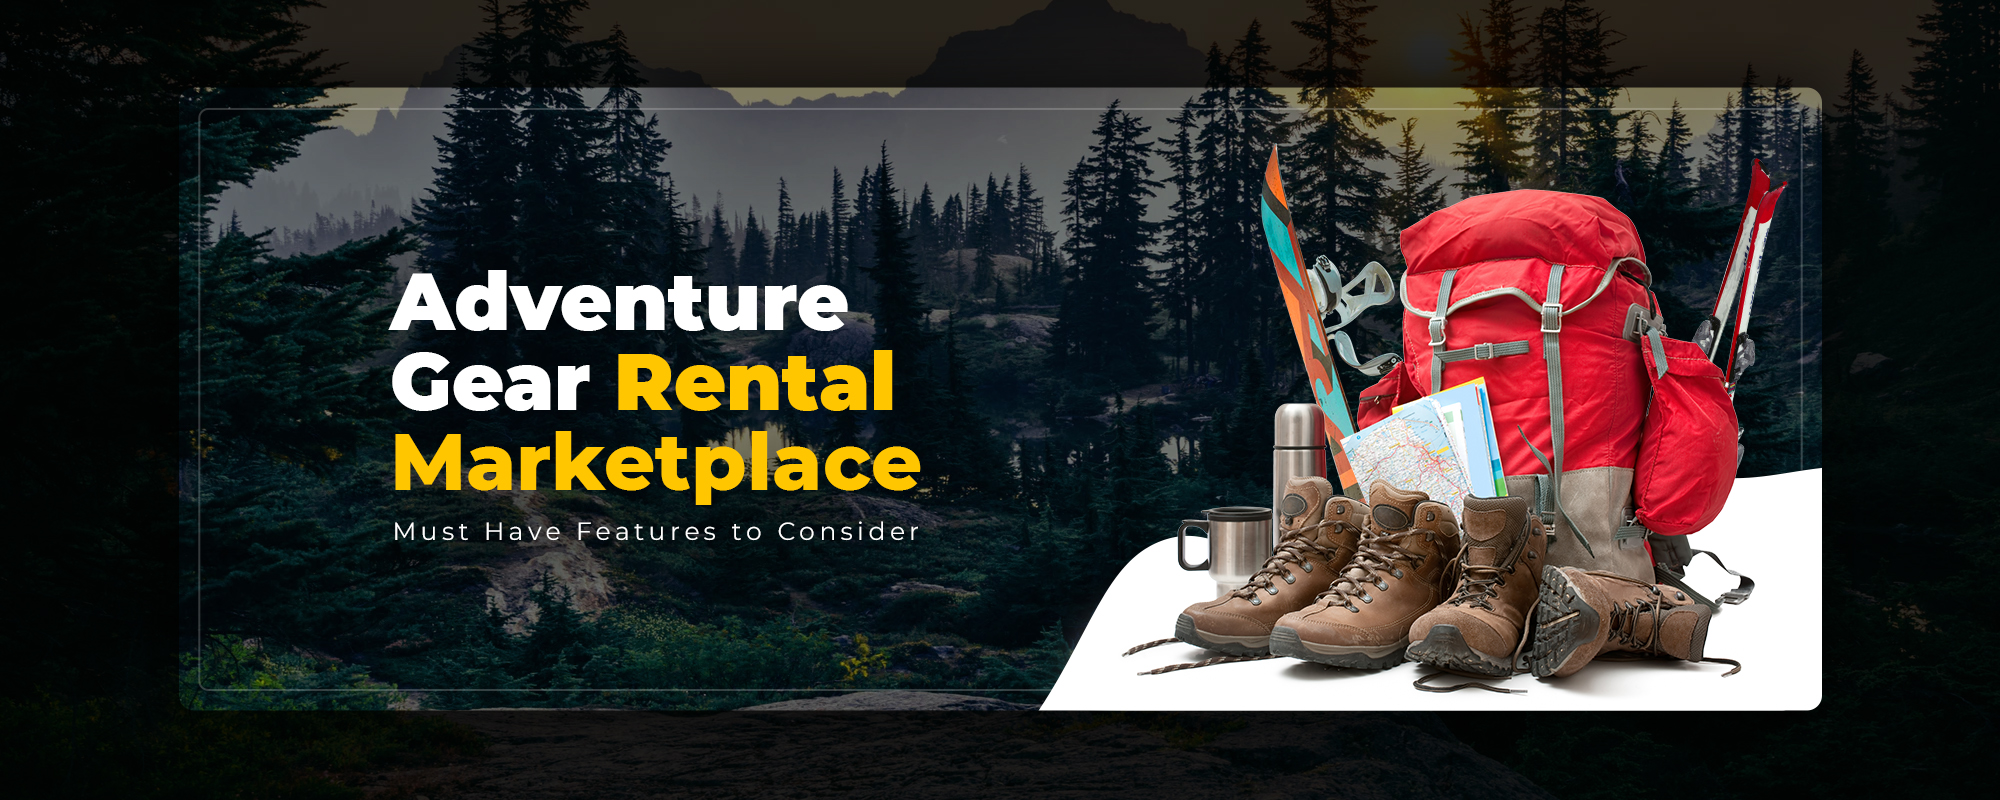 Start Outdoor Gear Rental Marketplace- Business Model & Key Features Analysis